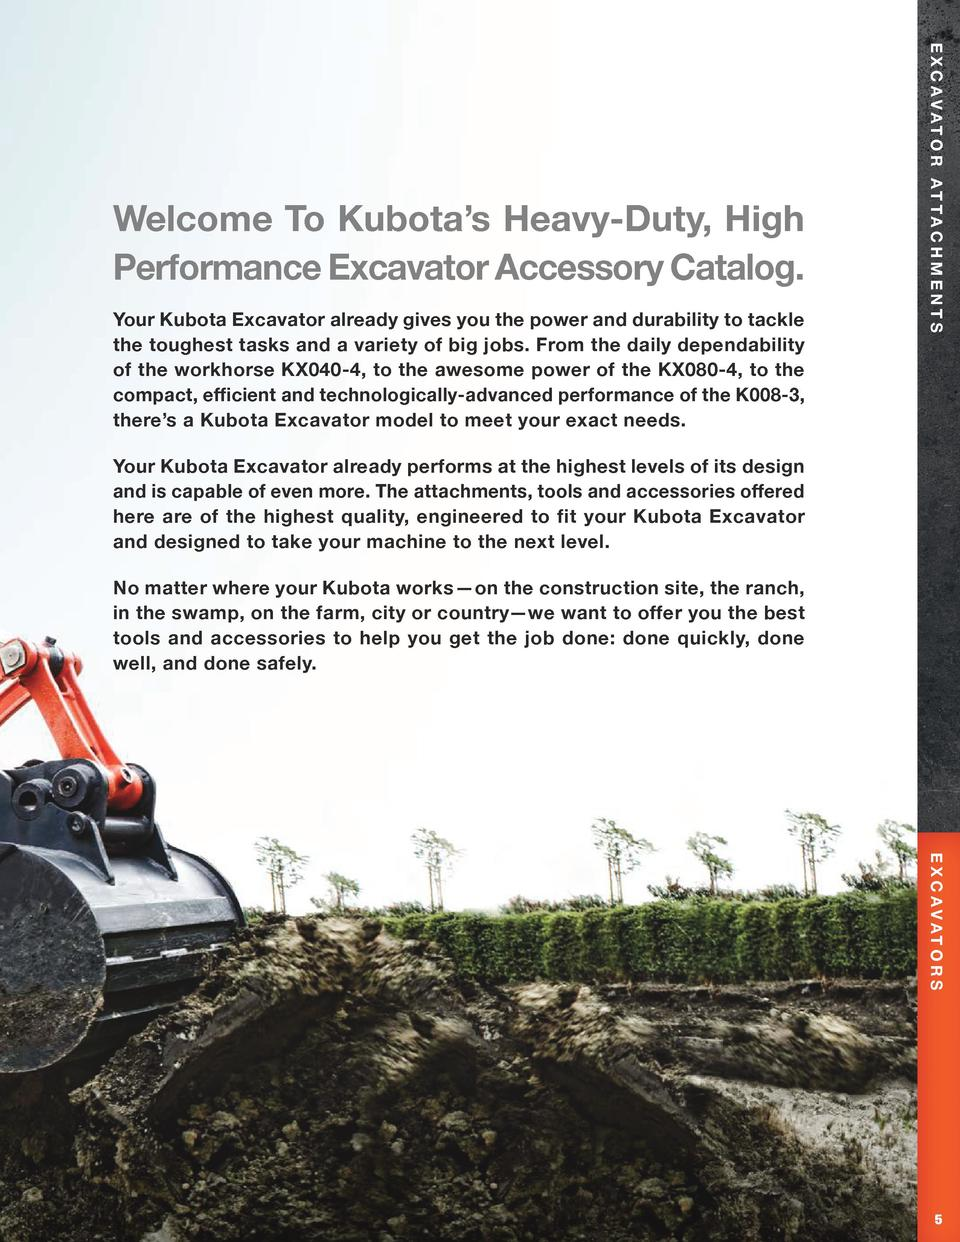 Your Kubota Excavator already gives you the power and durability to tackle the toughest tasks and a variety of big jobs. F...